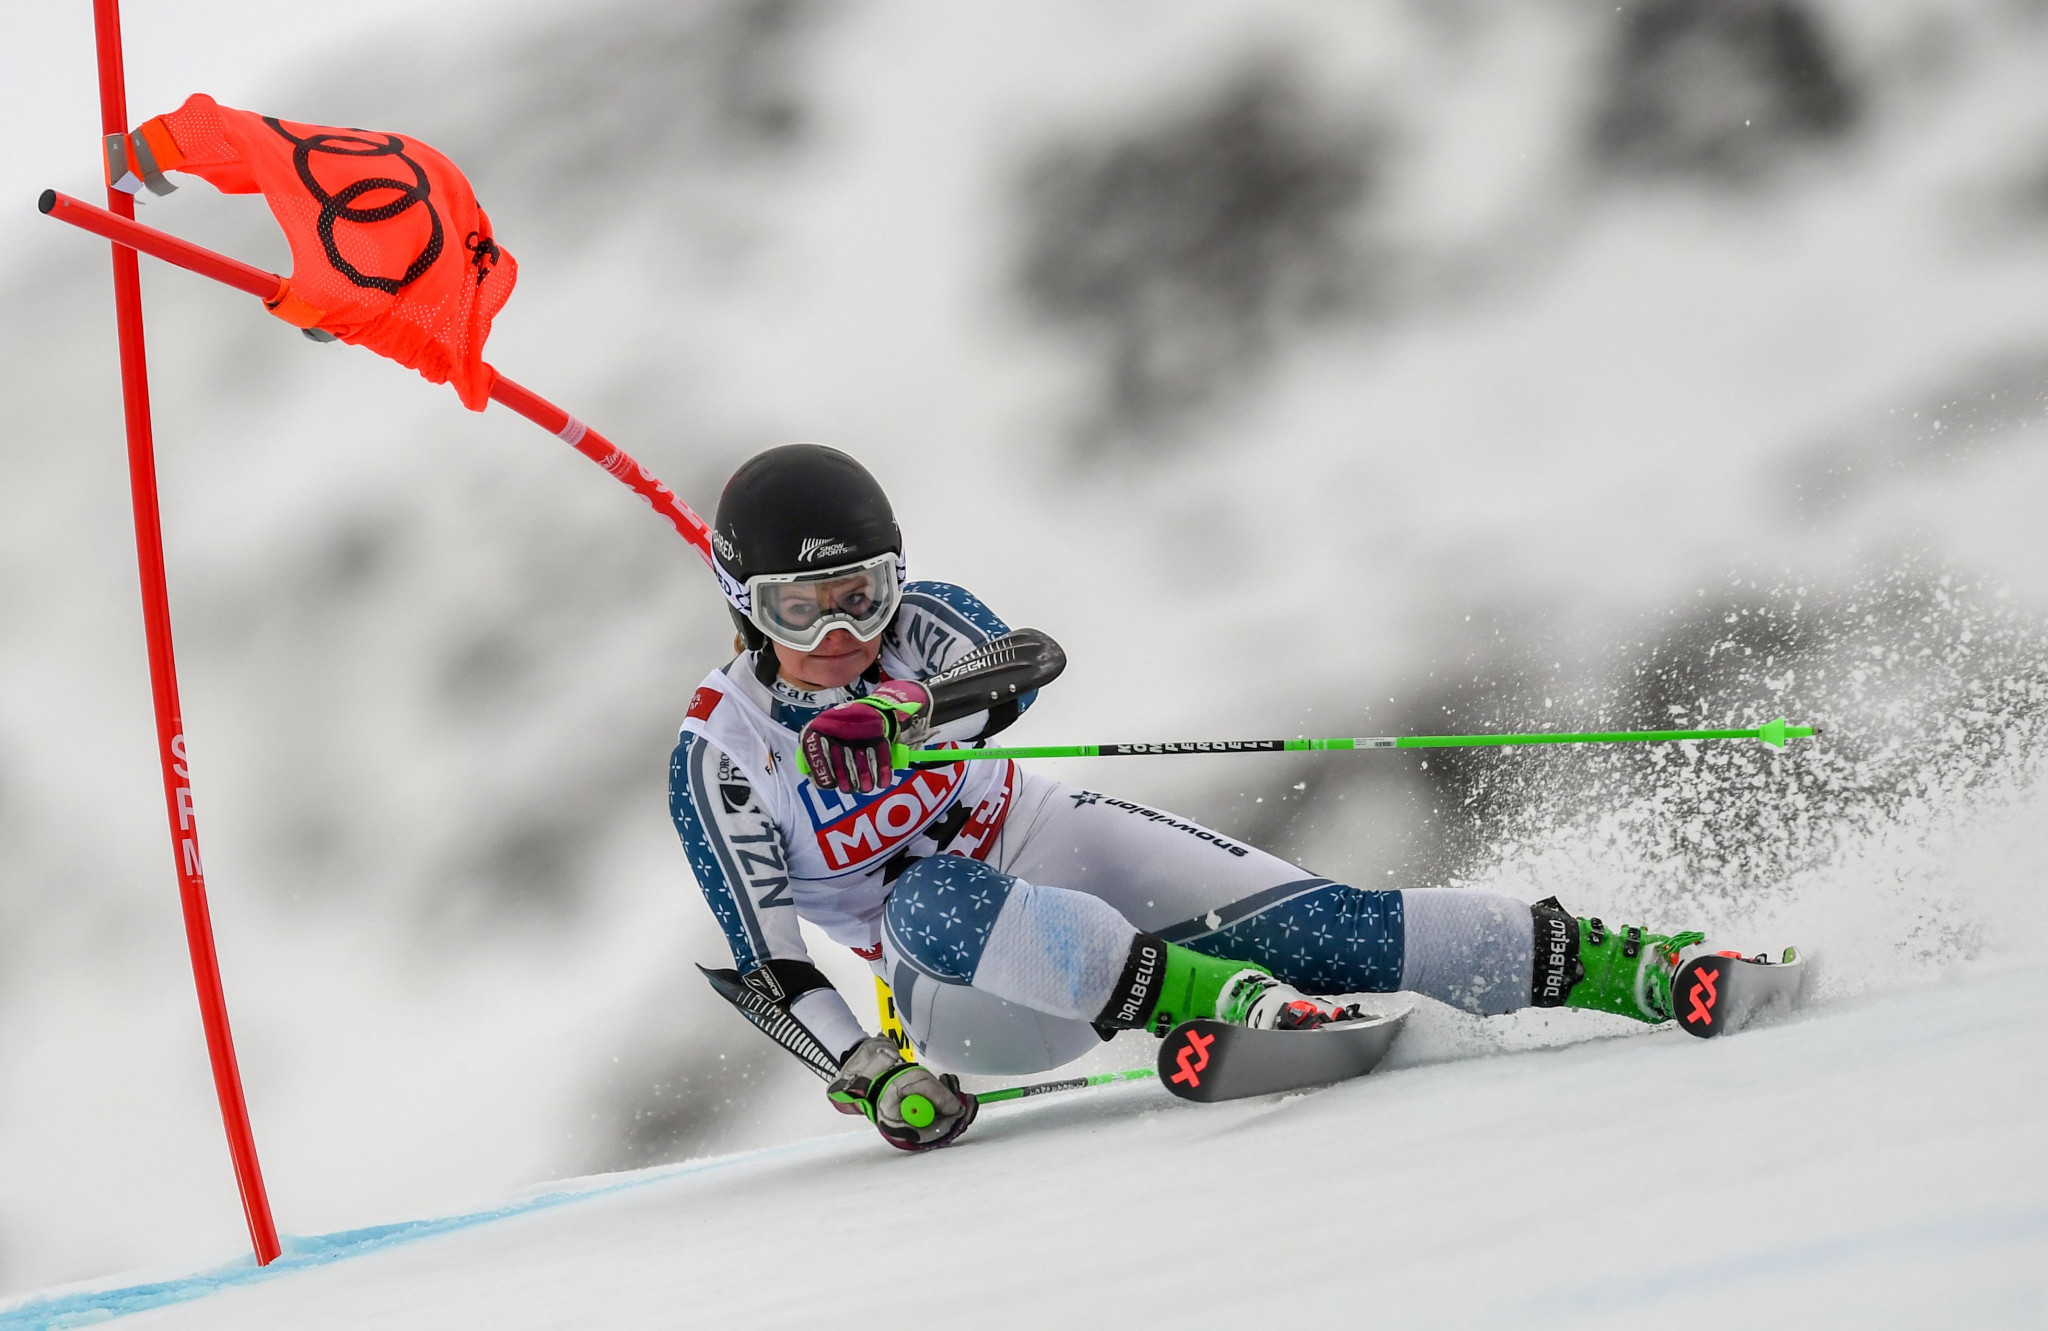 New Zealand's Alice Robinson dominated the giant slalom at he FIS World Junior Alpine Skiing Championships today to win the gold medal at the FIS World Junior Alpine Skiing Championships ©Getty Images